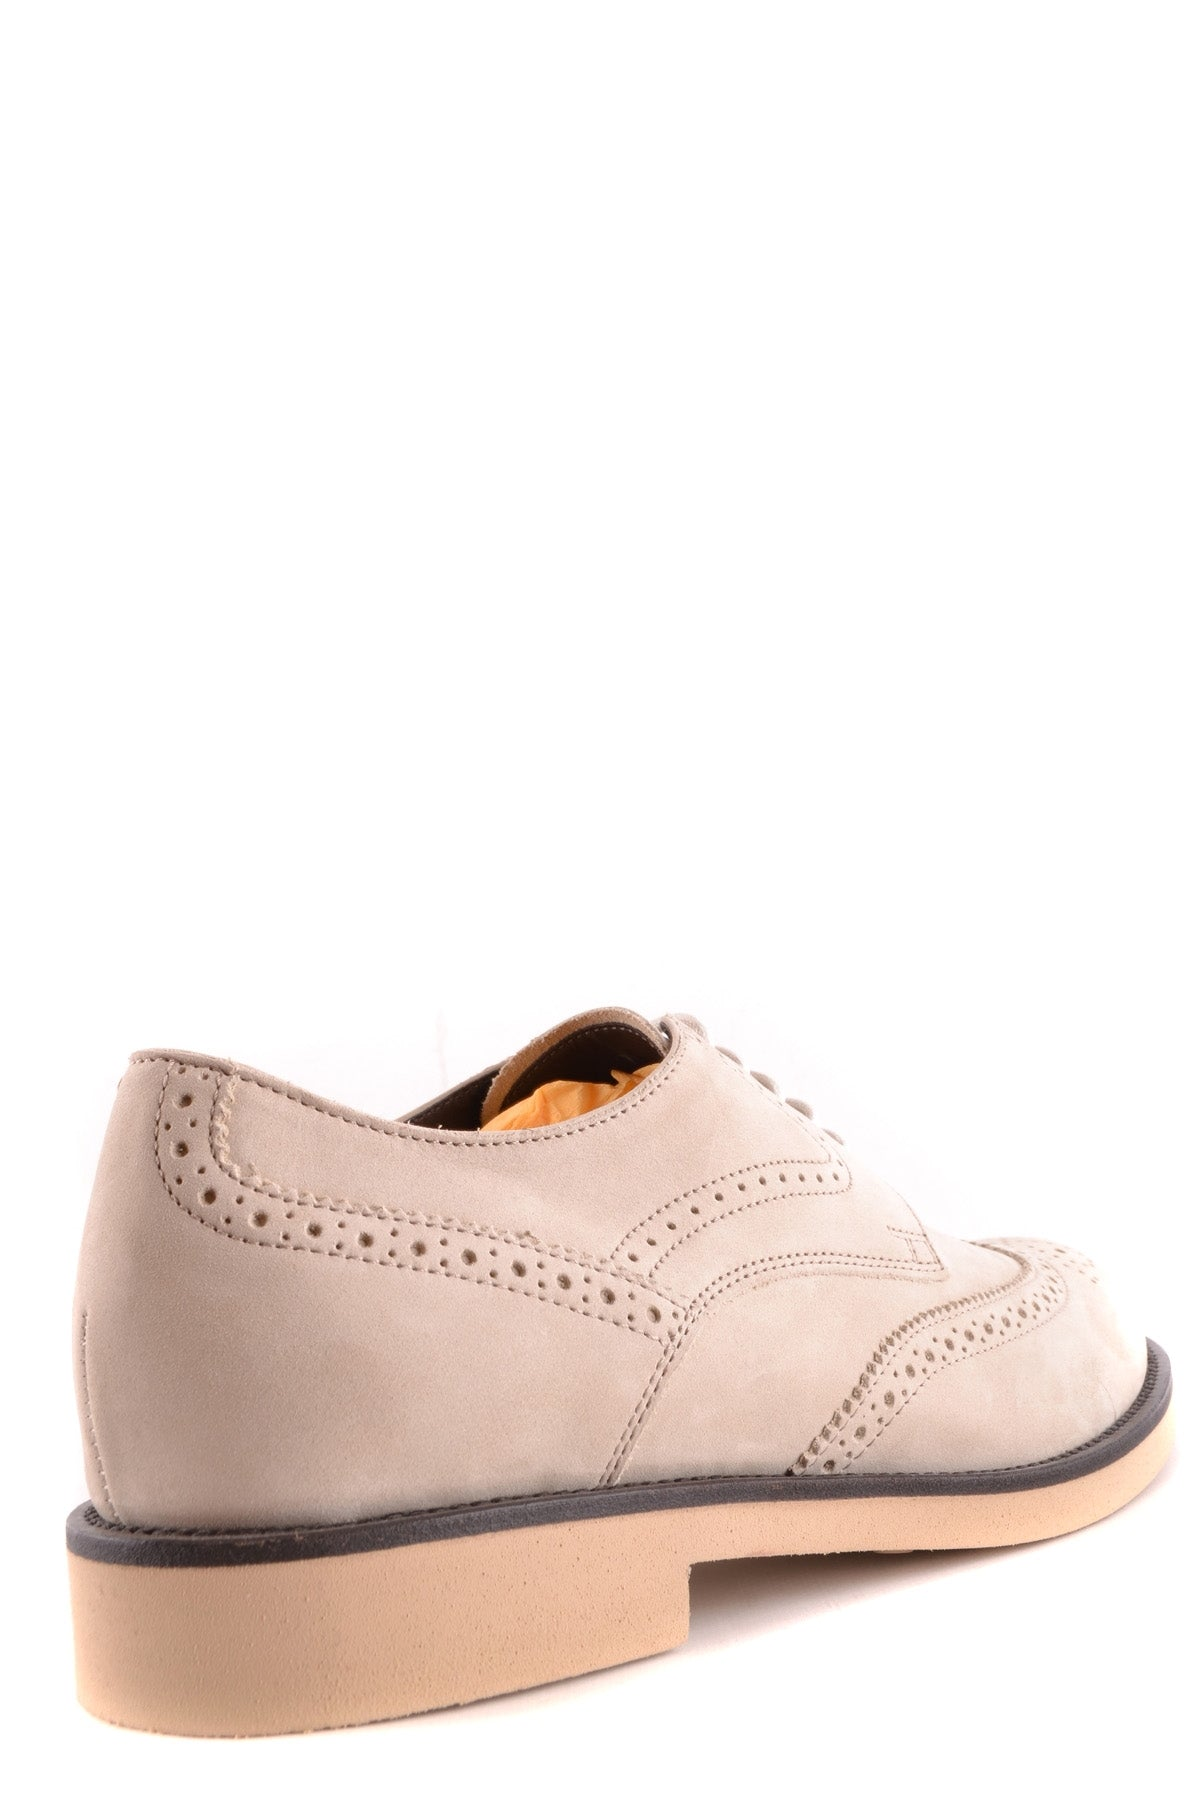 Shoes Tod'S-Derby - Shoes-Product Details Type Of Accessory: ShoesSeason: Spring / SummerTerms: New With LabelMain Color: GrayGender: ManMade In: ItalyManufacturer Part Number: Xxm0Wp00C10Fl1B203 Size: UkYear: 2017Composition: Chamois 100%-Keyomi-Sook